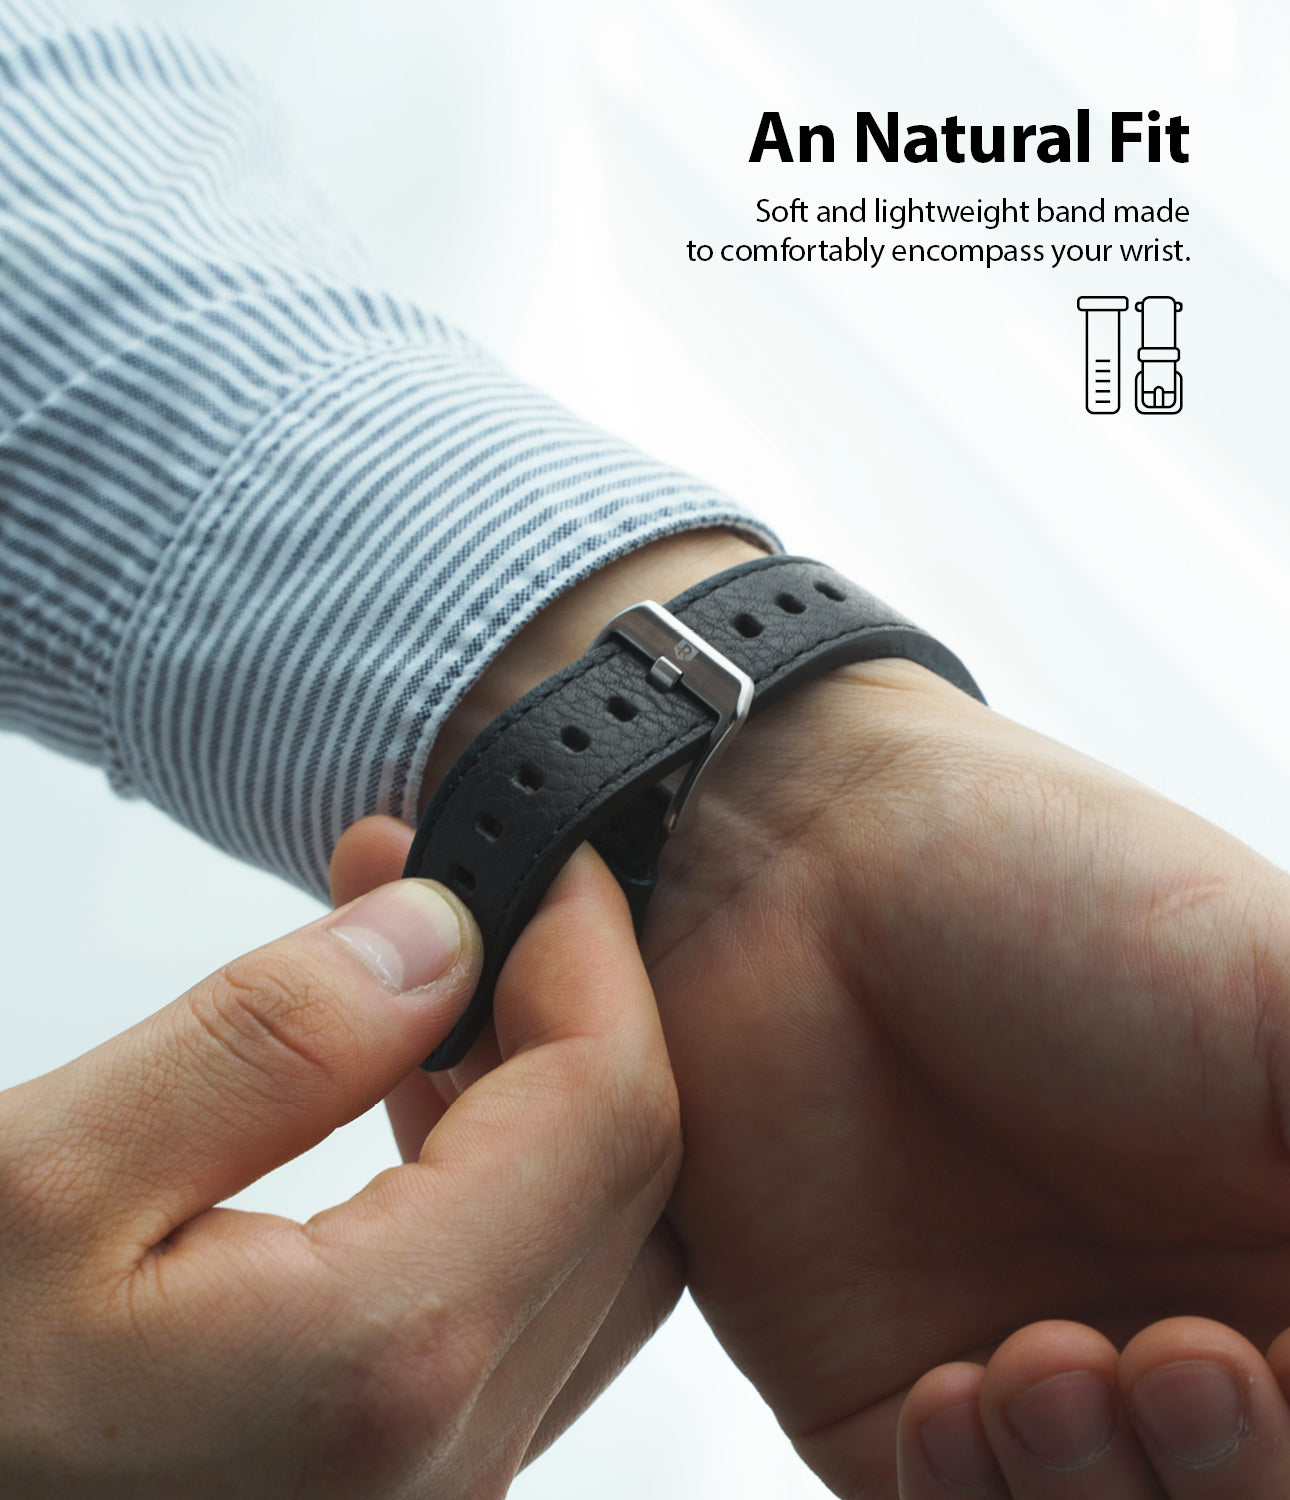 natural fit - soft and lightweight band made to comfortably encompass your wrist